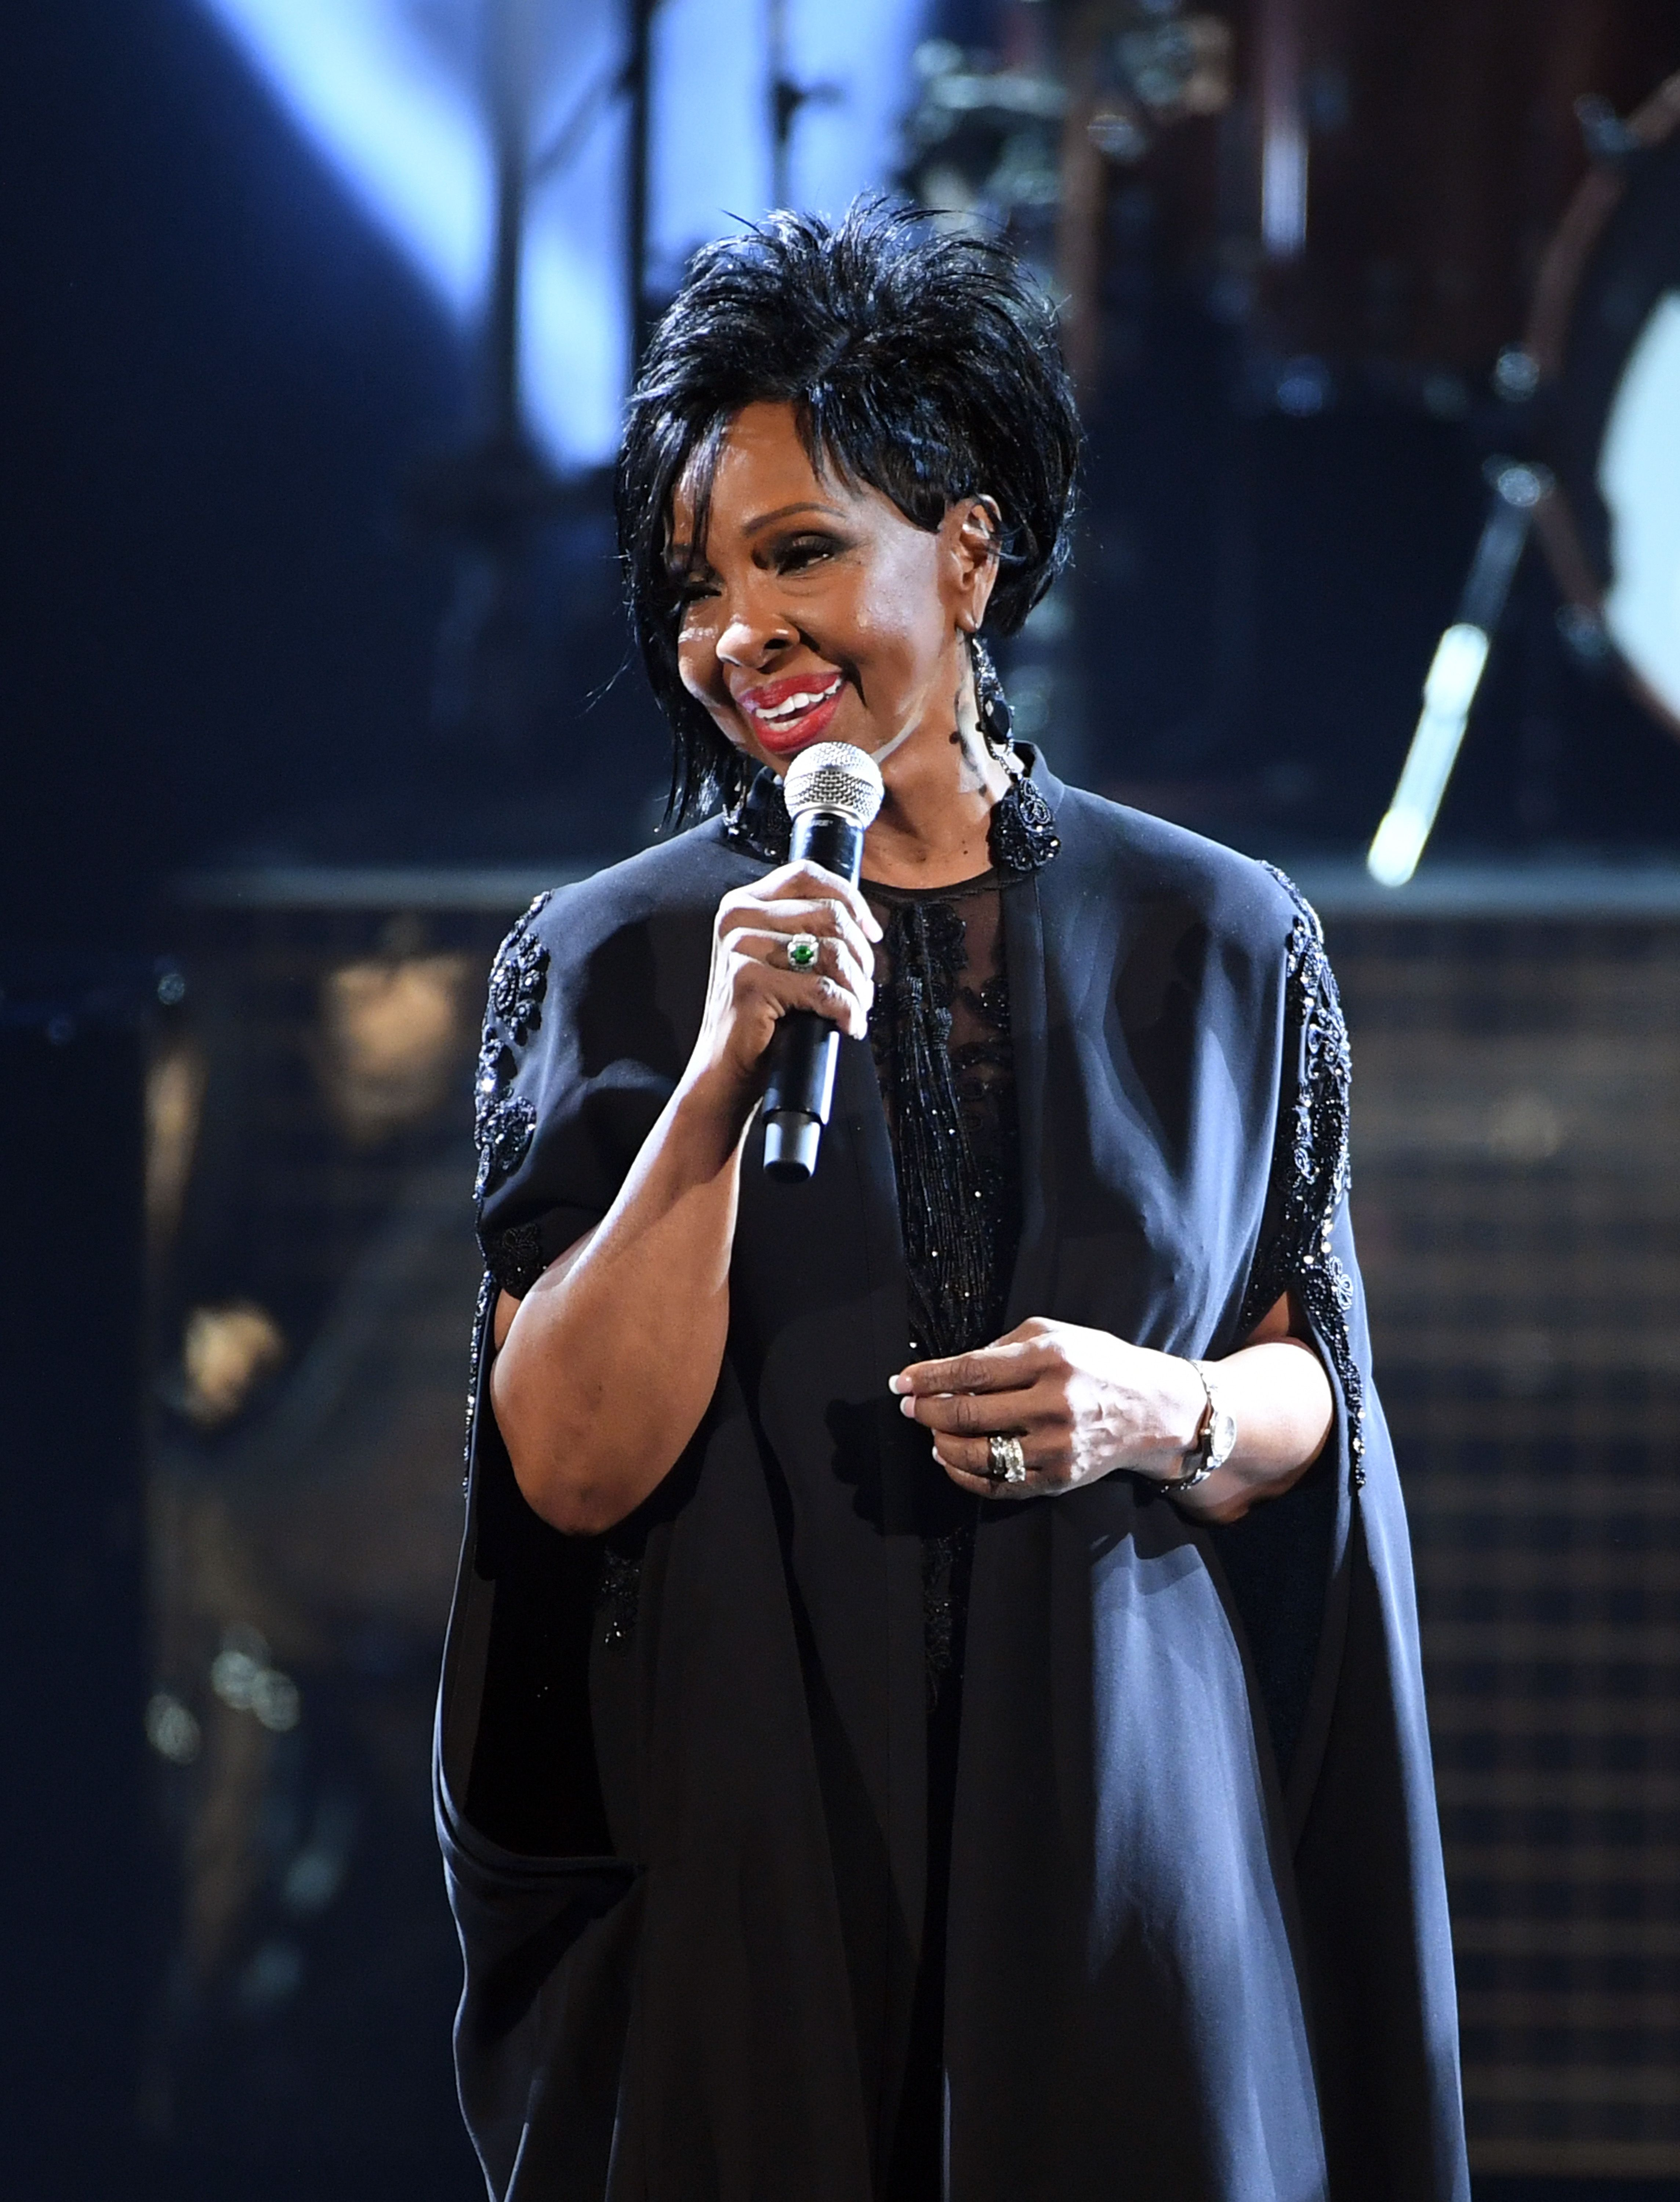 Gladys Knight performs during the 2018 American Music Awards at Microsoft Theater on October 9, 2018 in Los Angeles, California. | Source: Getty Images